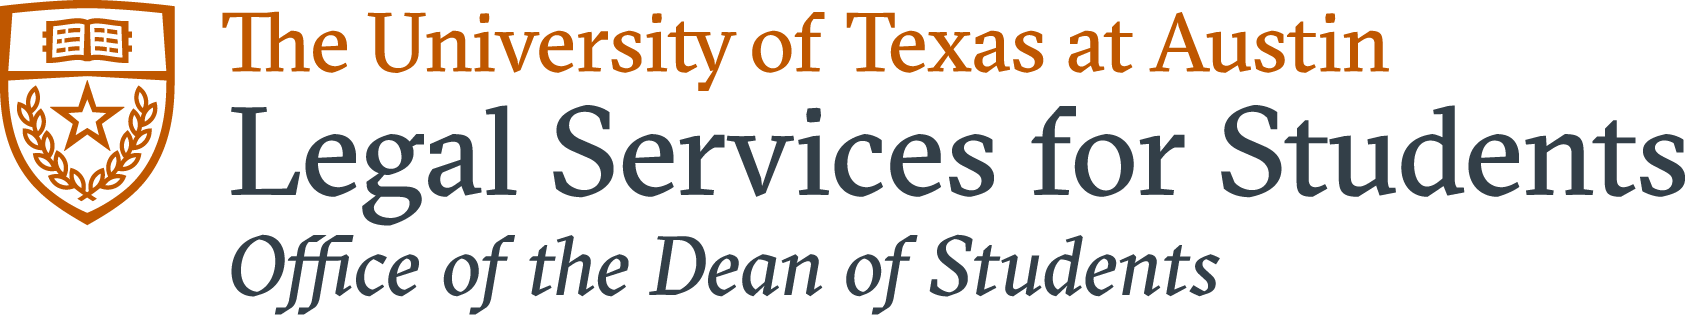 Legal Services for Students logo